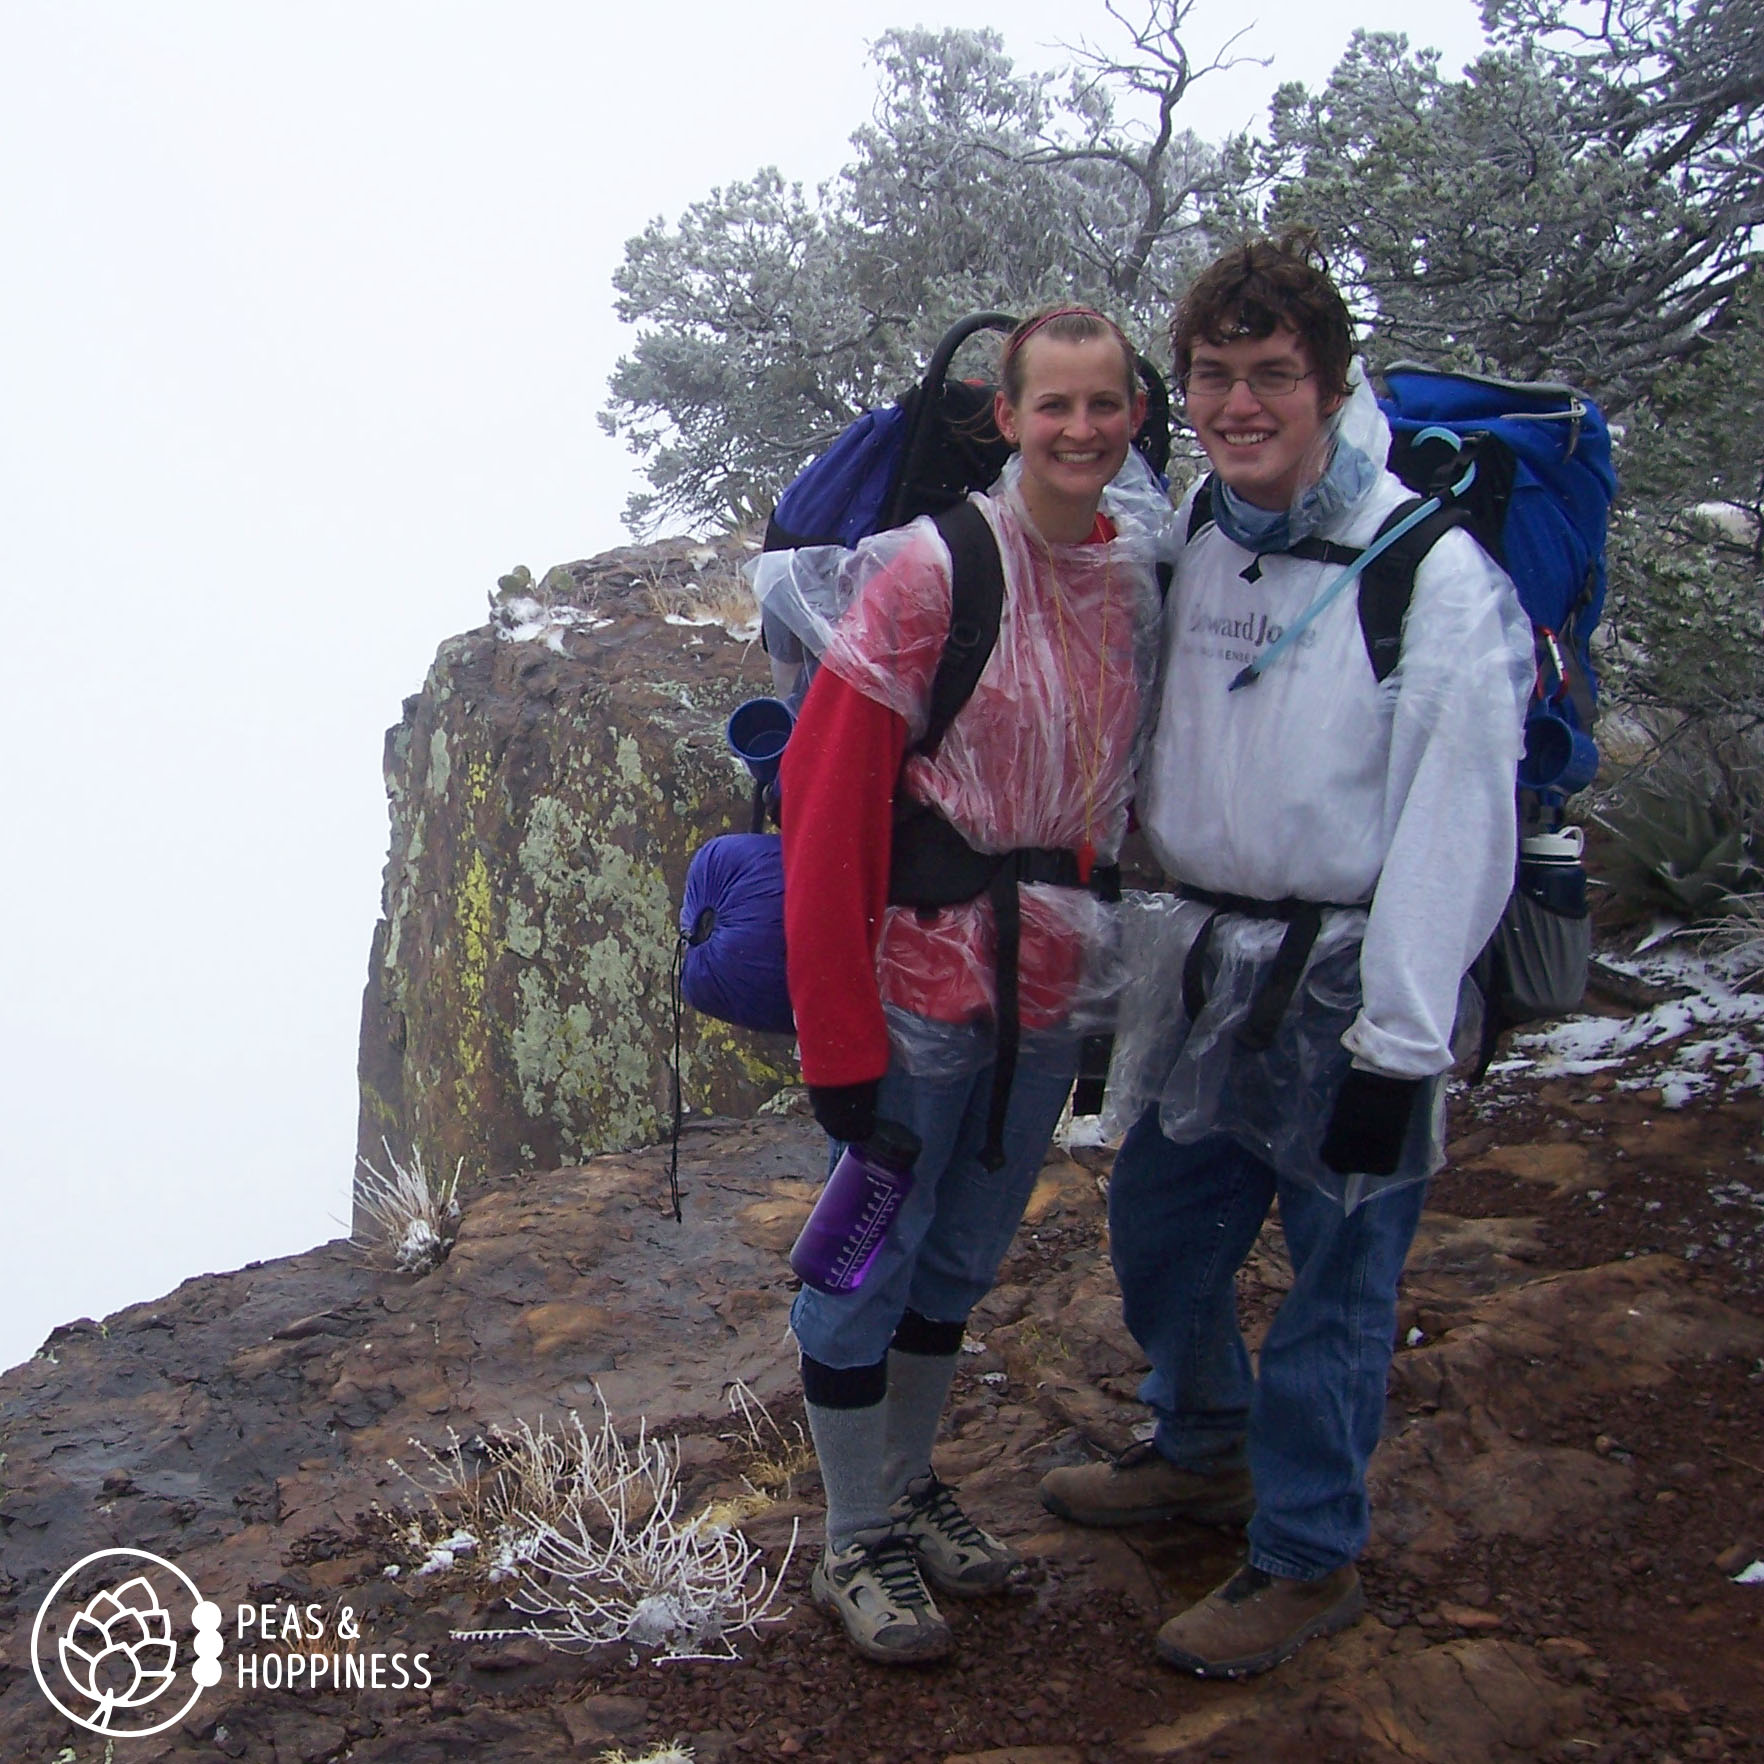 Young Ann and Deric - not their first backpacking trip, but before learning to bring more clothes than you'll think you need (it snowed unexpectedly) and prior to purchasing modern-day internal-framed backpacks. But they lived! Big Bend National Park